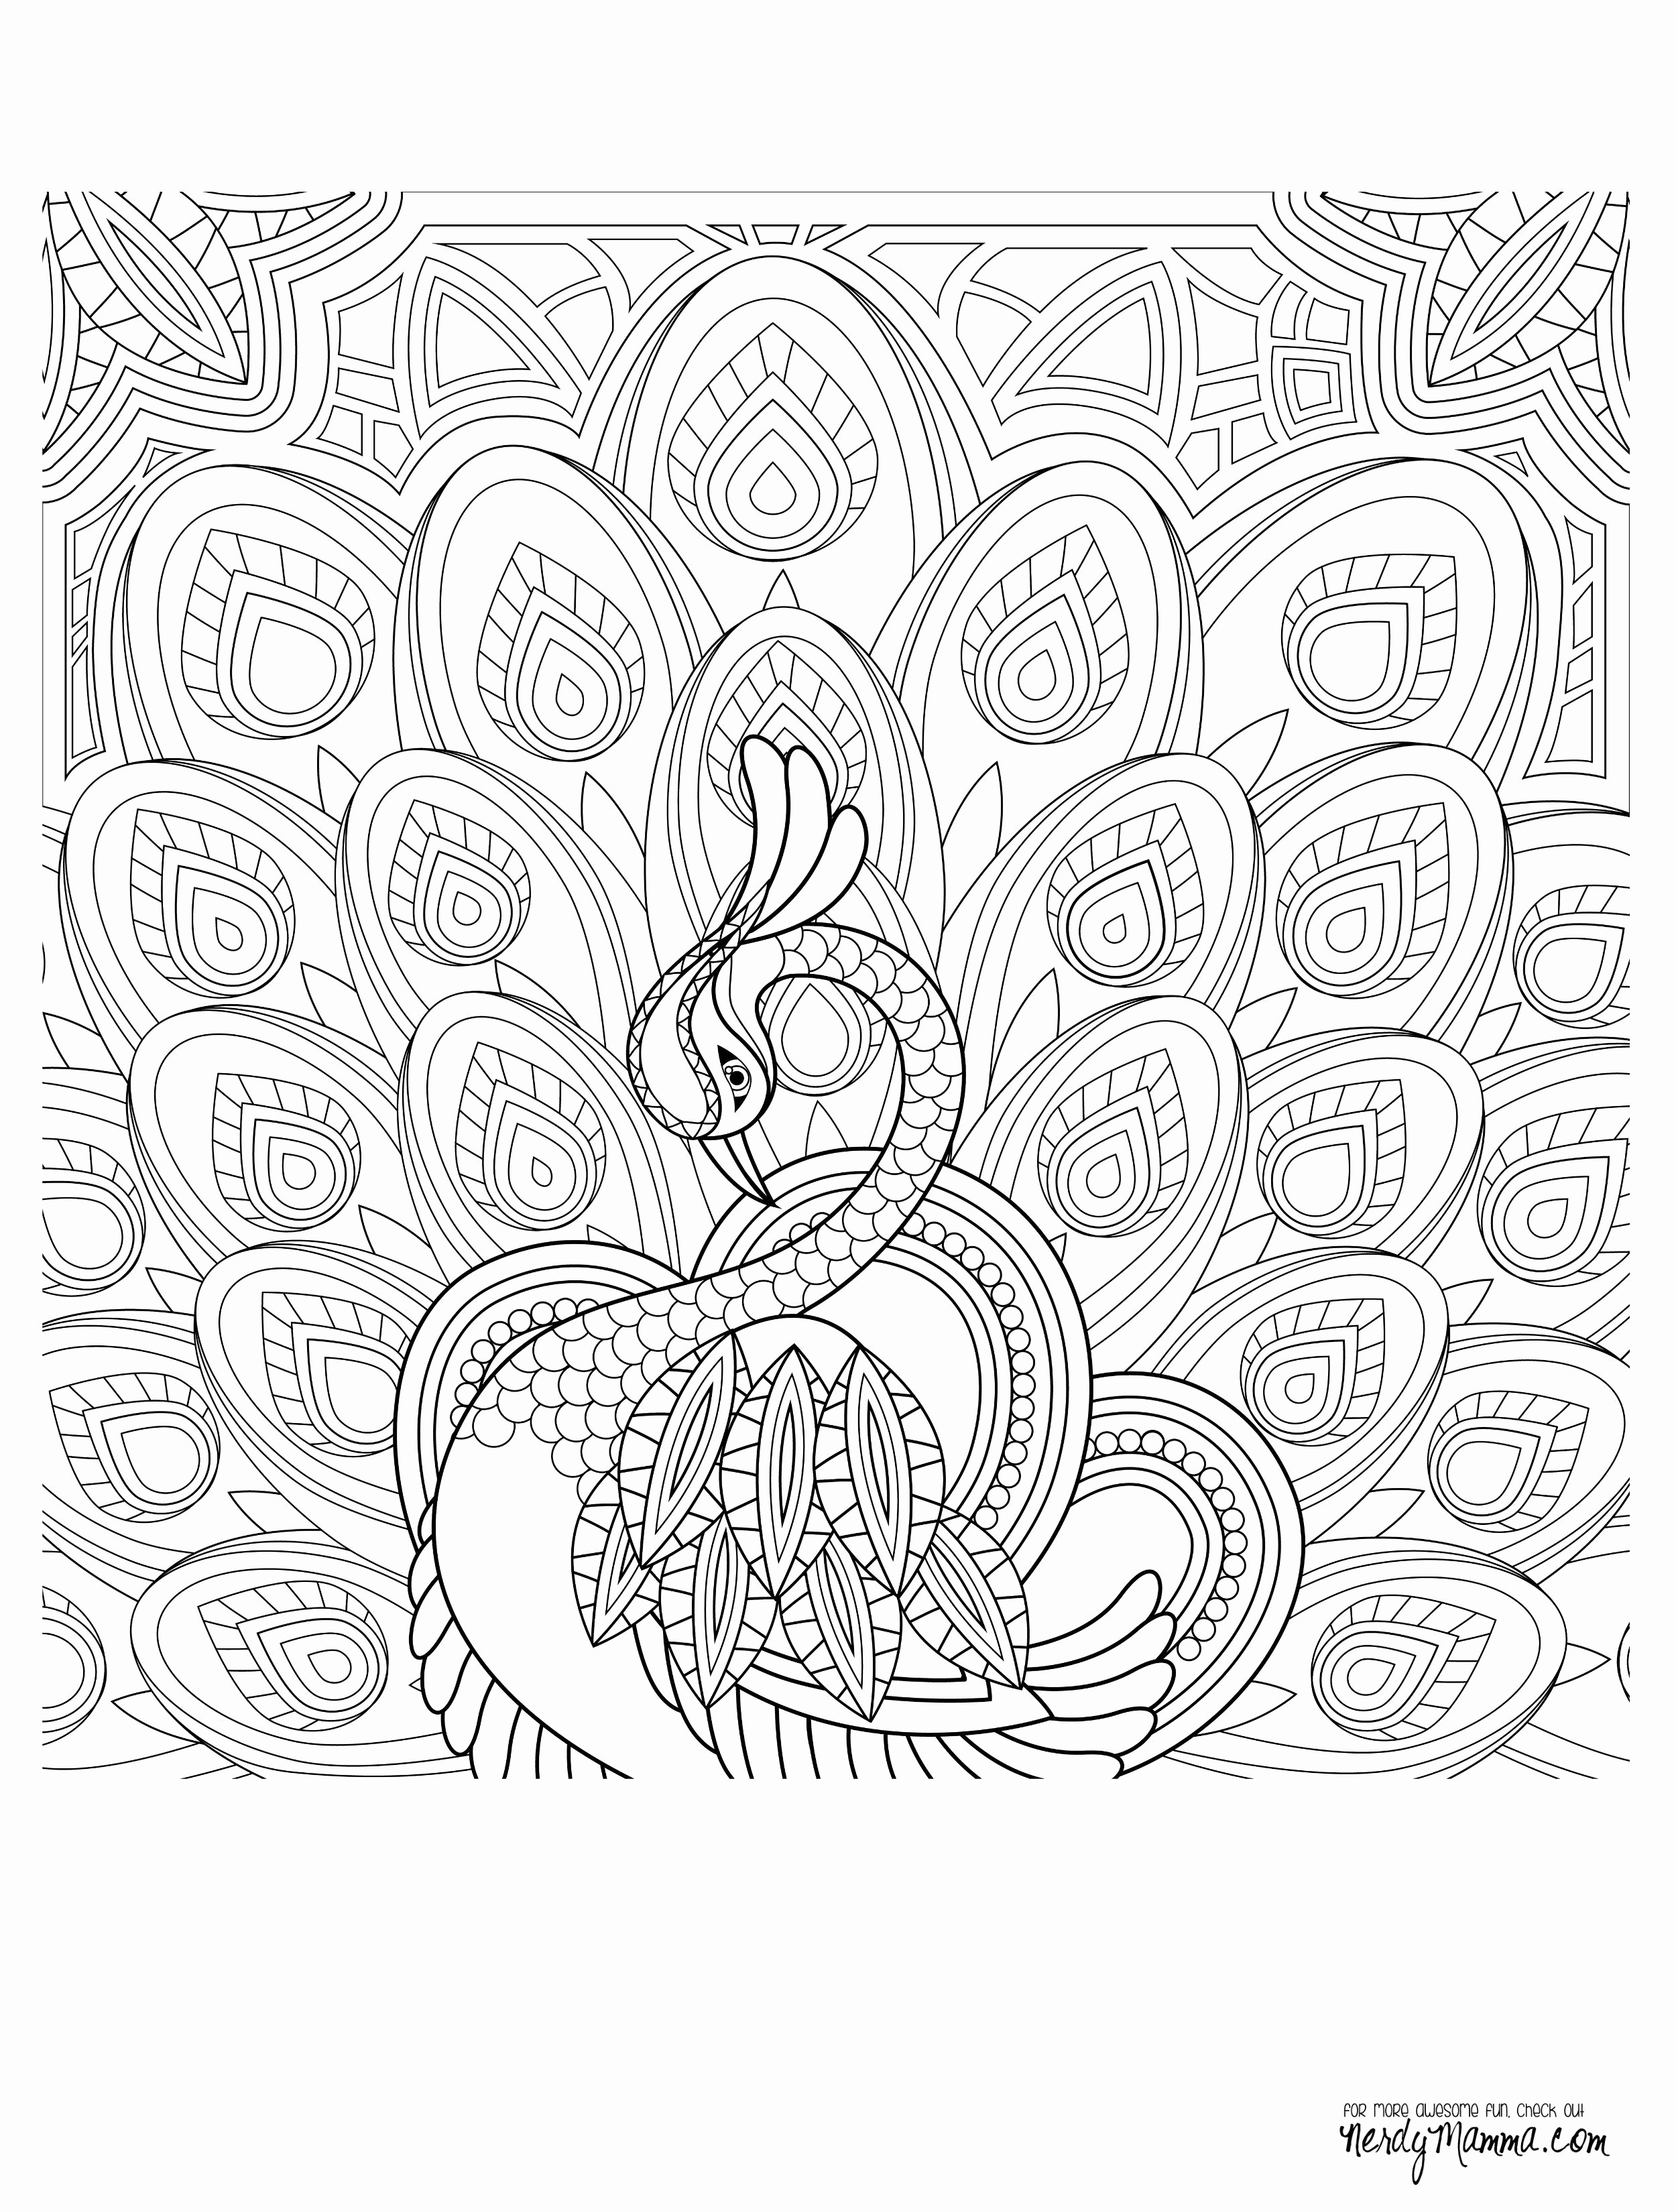 Coloring Pages For Adults Peacock At Getdrawings Com Free